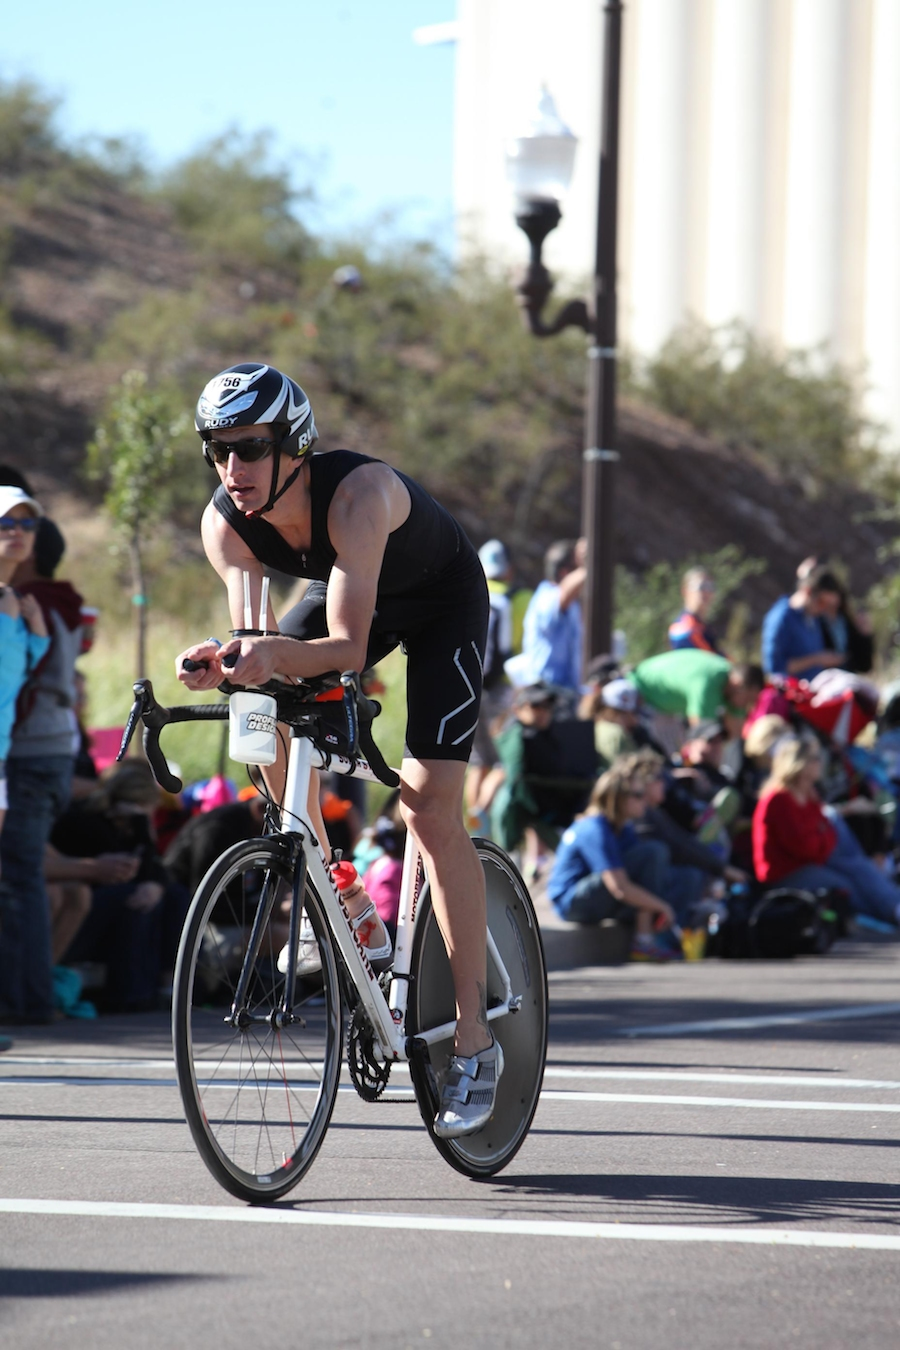 greg_kroleski_ironman_arizona_bike_in_town